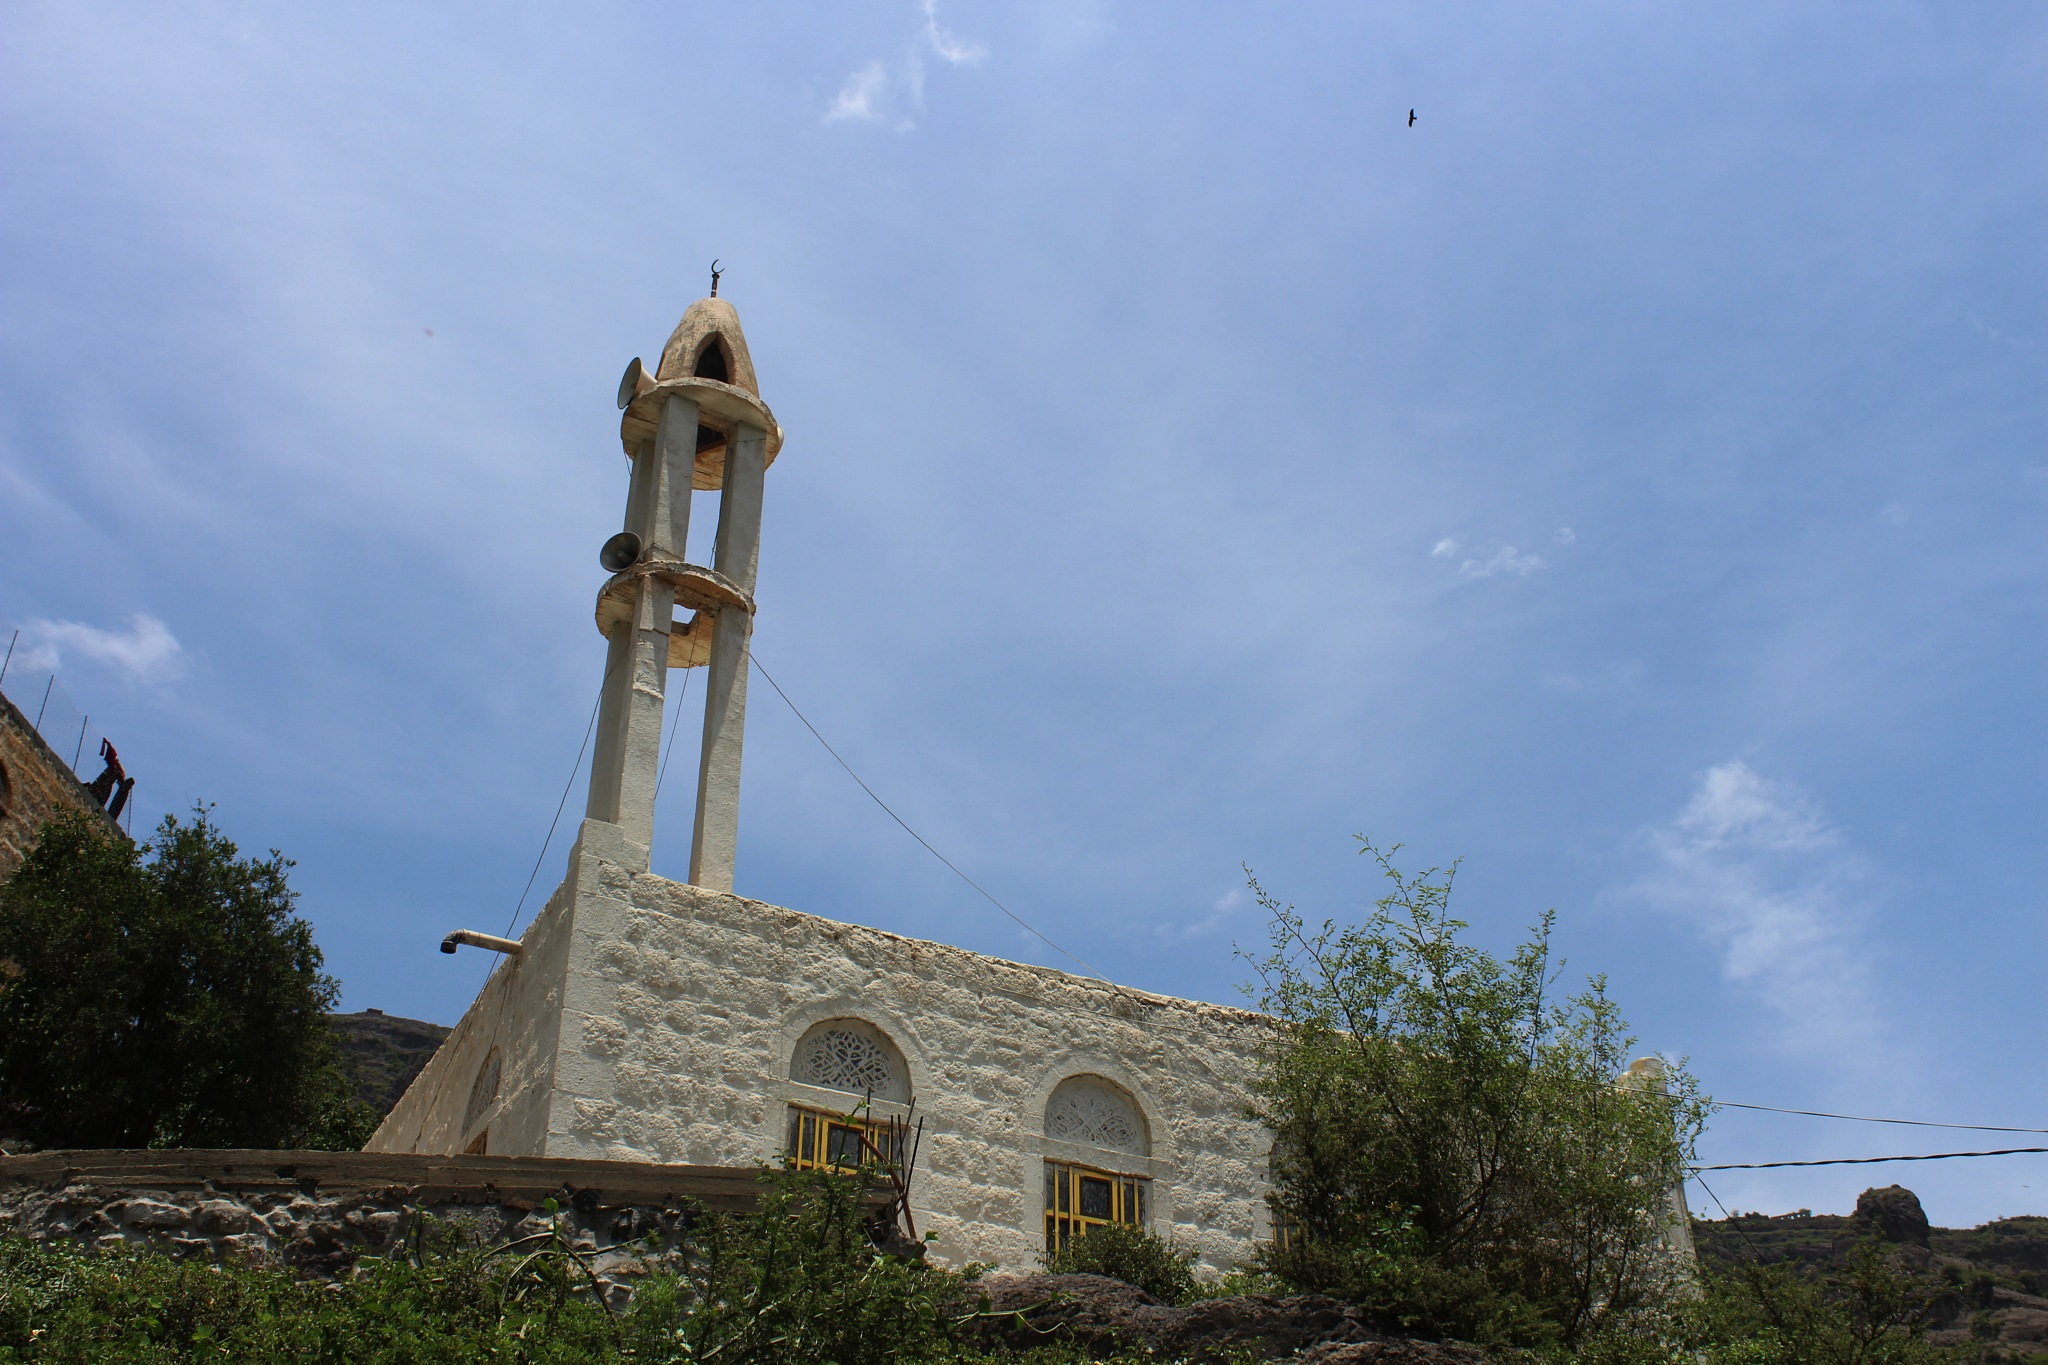 A mosque in my village by Nedhal Alawadi